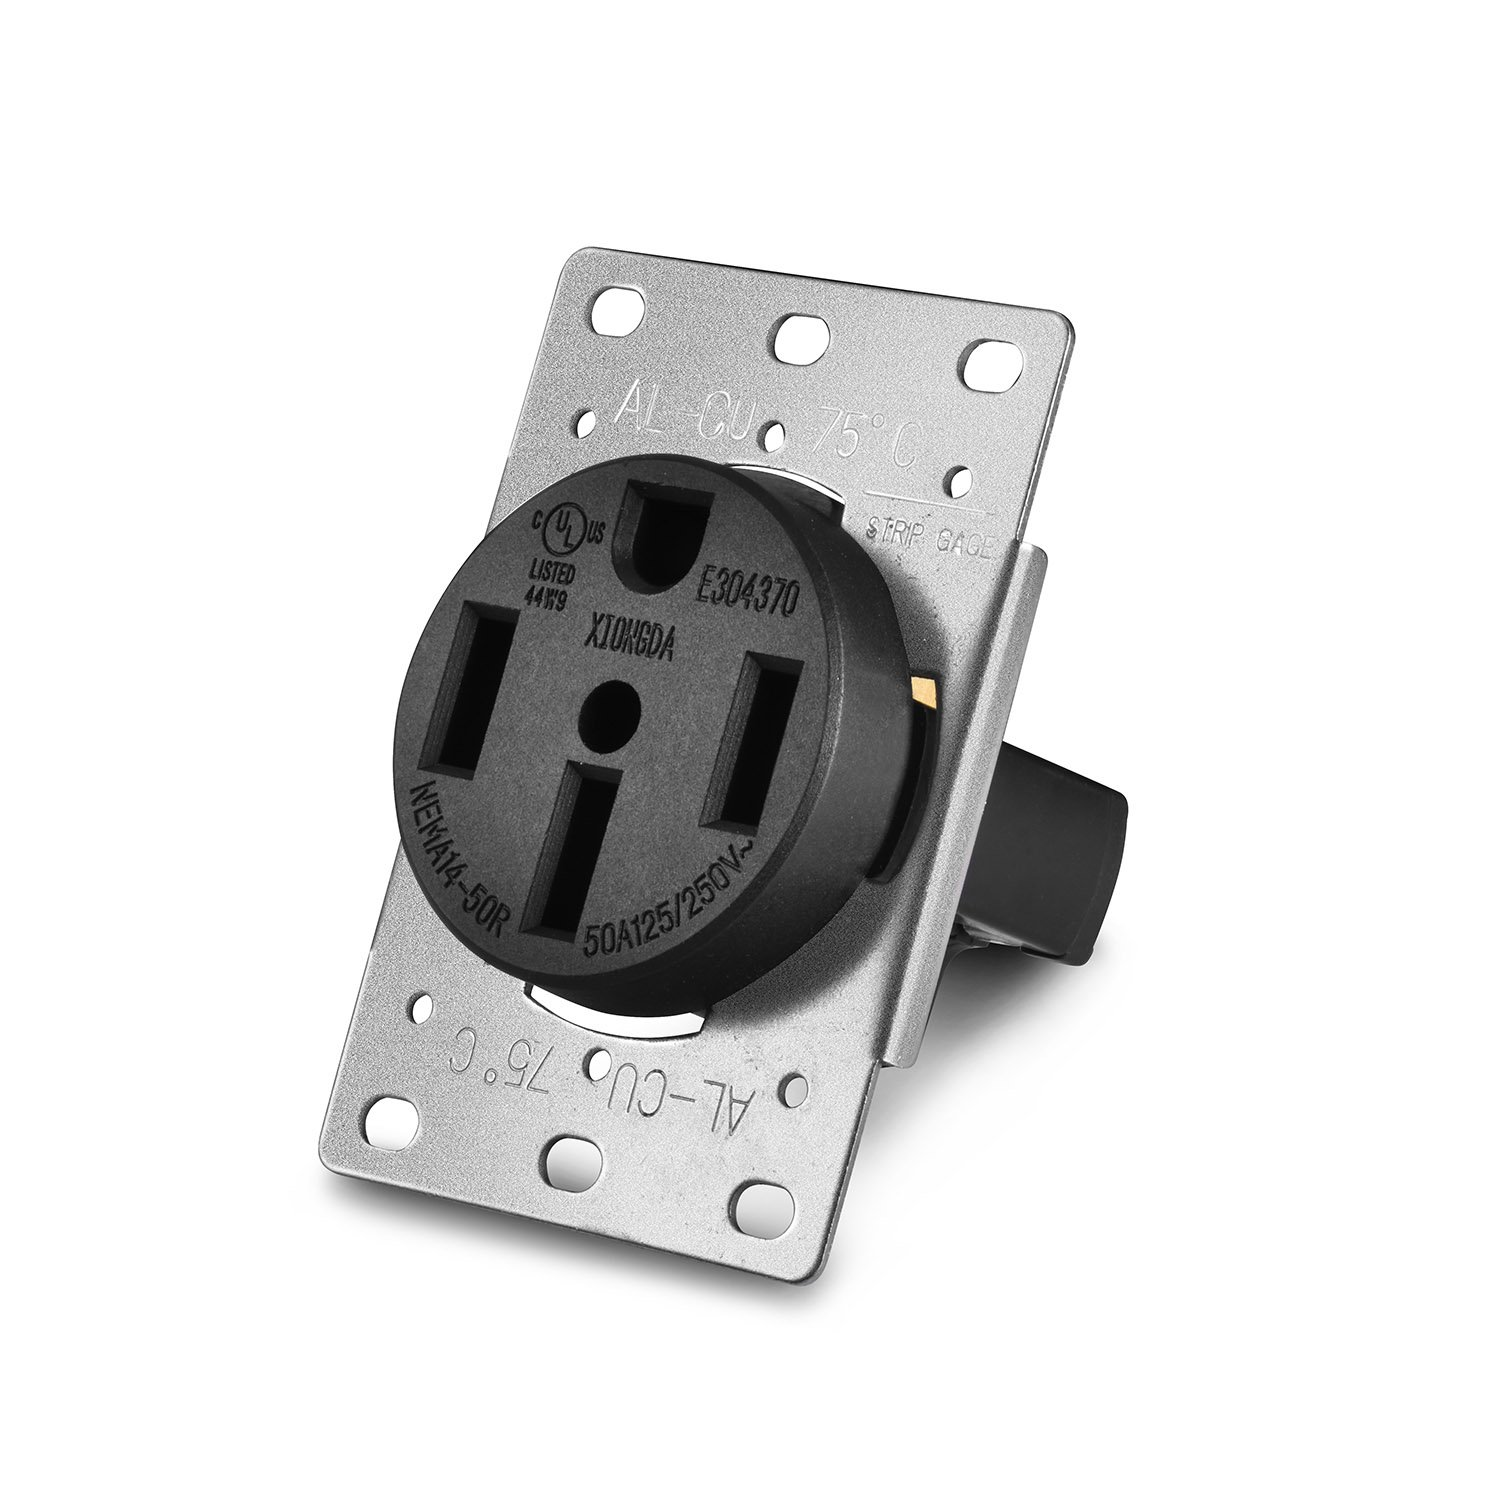 Aweking UL Listed 50 Amp 50A Power Receptacle Outlet NEMA 14-50R,Industrial Power,125 volt,250 volt,nema 14-50r Receptacle,Straight Blade,Flush Mounting,3 Pole 4 Wire,for EV RV Dryer Power